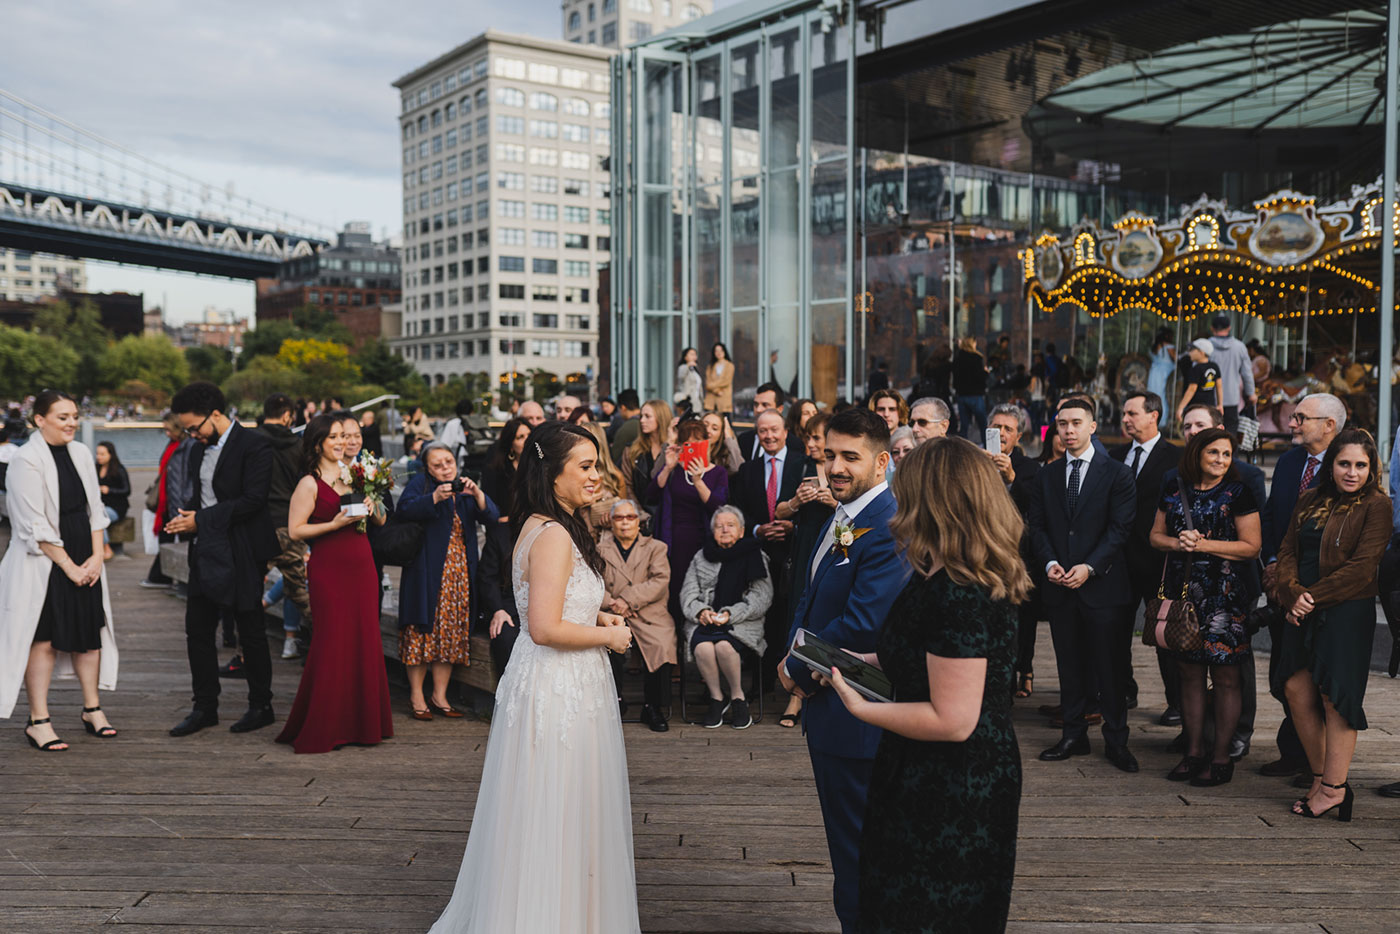 ceremony Portrait of bride and groom at an elopement at Jane's Carousel in Brooklyn Bridge Park by Weddings by Hanel